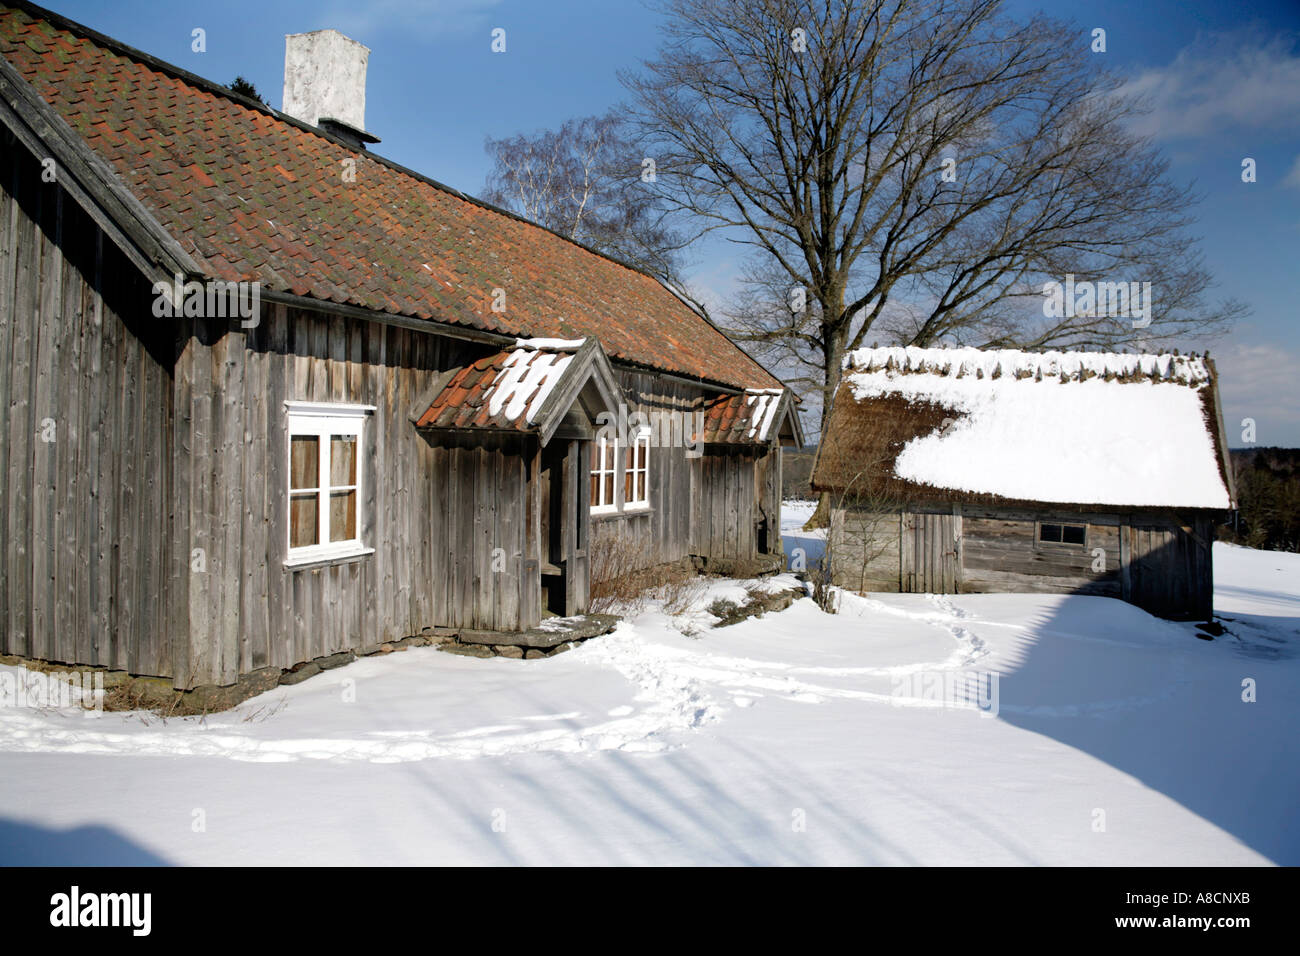 Farmstead Askhult Village - Stock Image